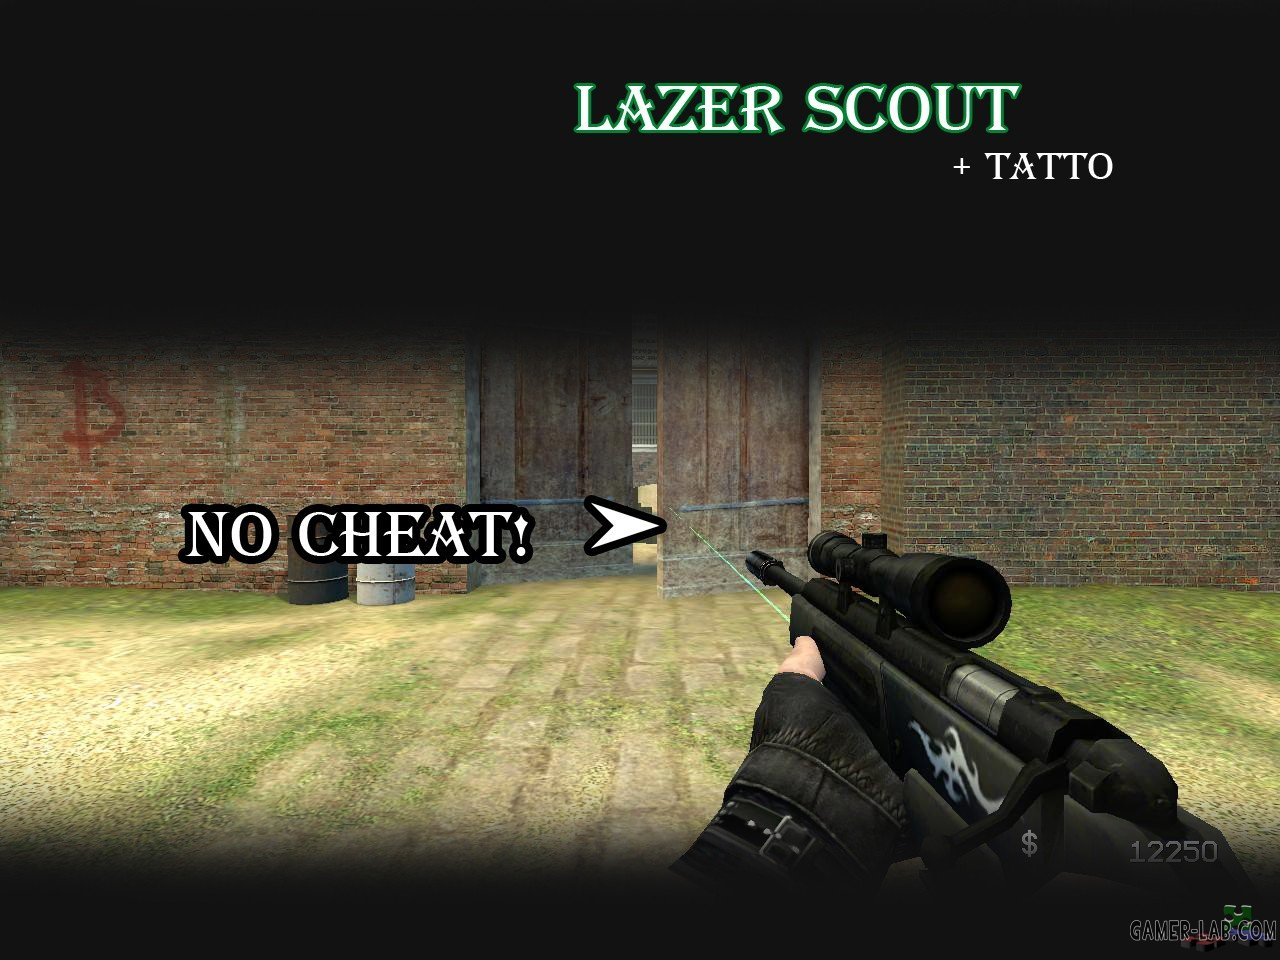 Lazer Scout + Tatto